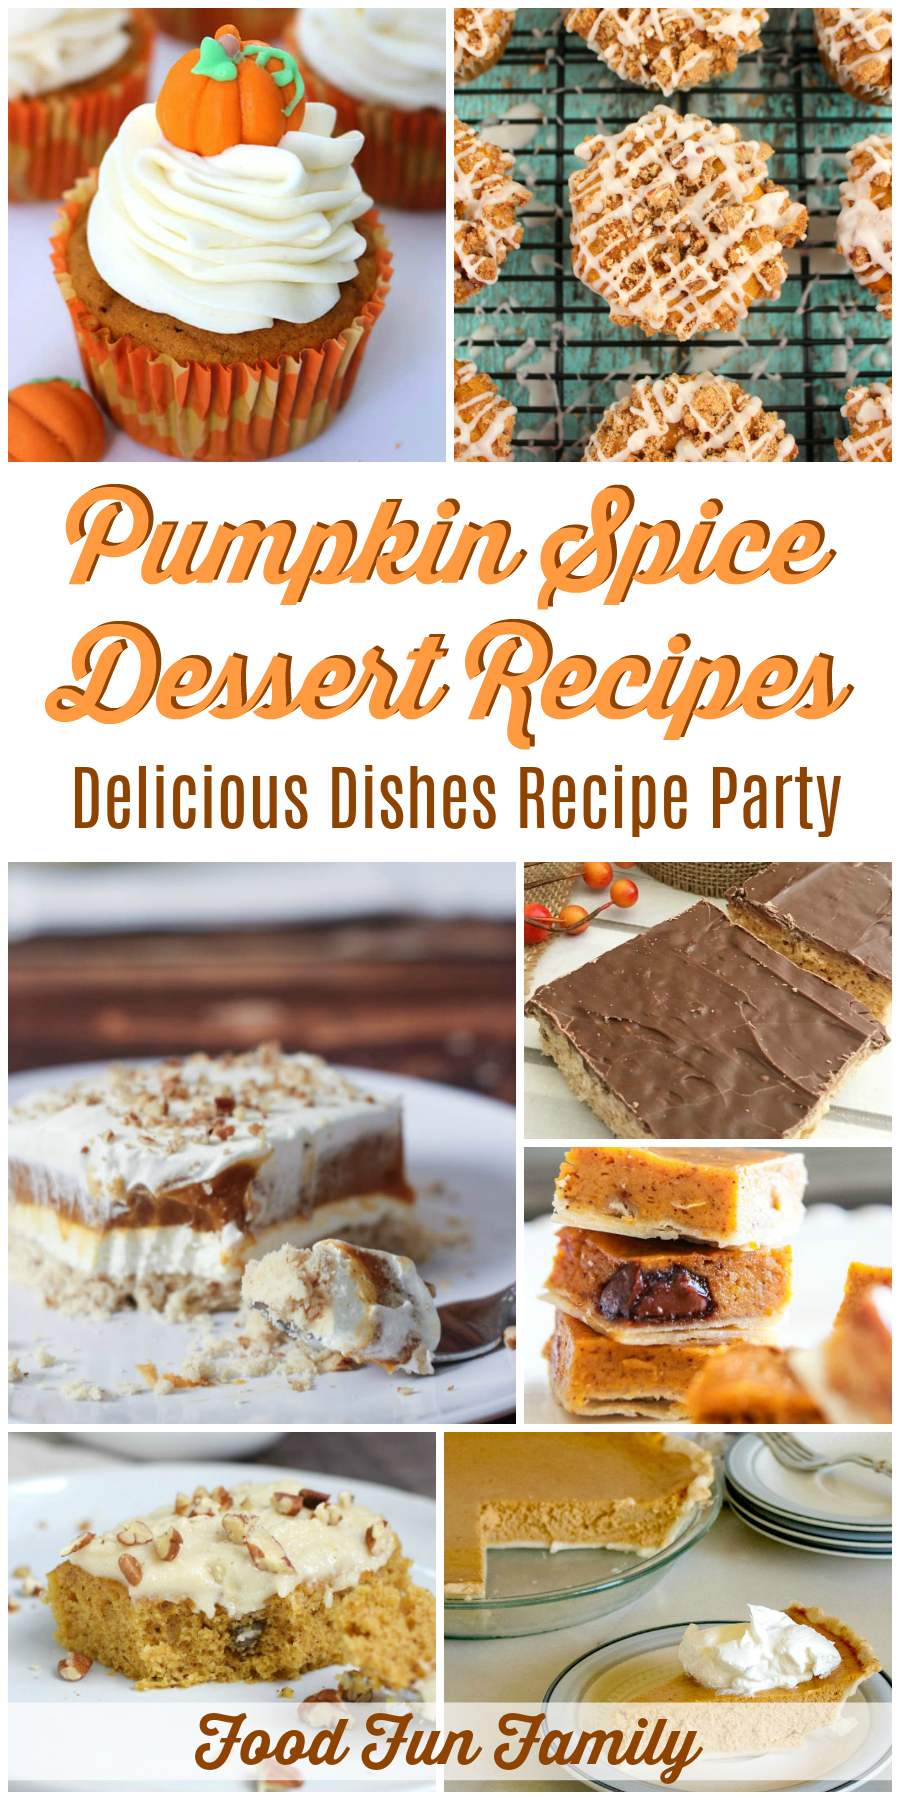 Pumpkin Spice Dessert Recipes - a Delicious Dishes Recipe Party collection from Food Fun Family